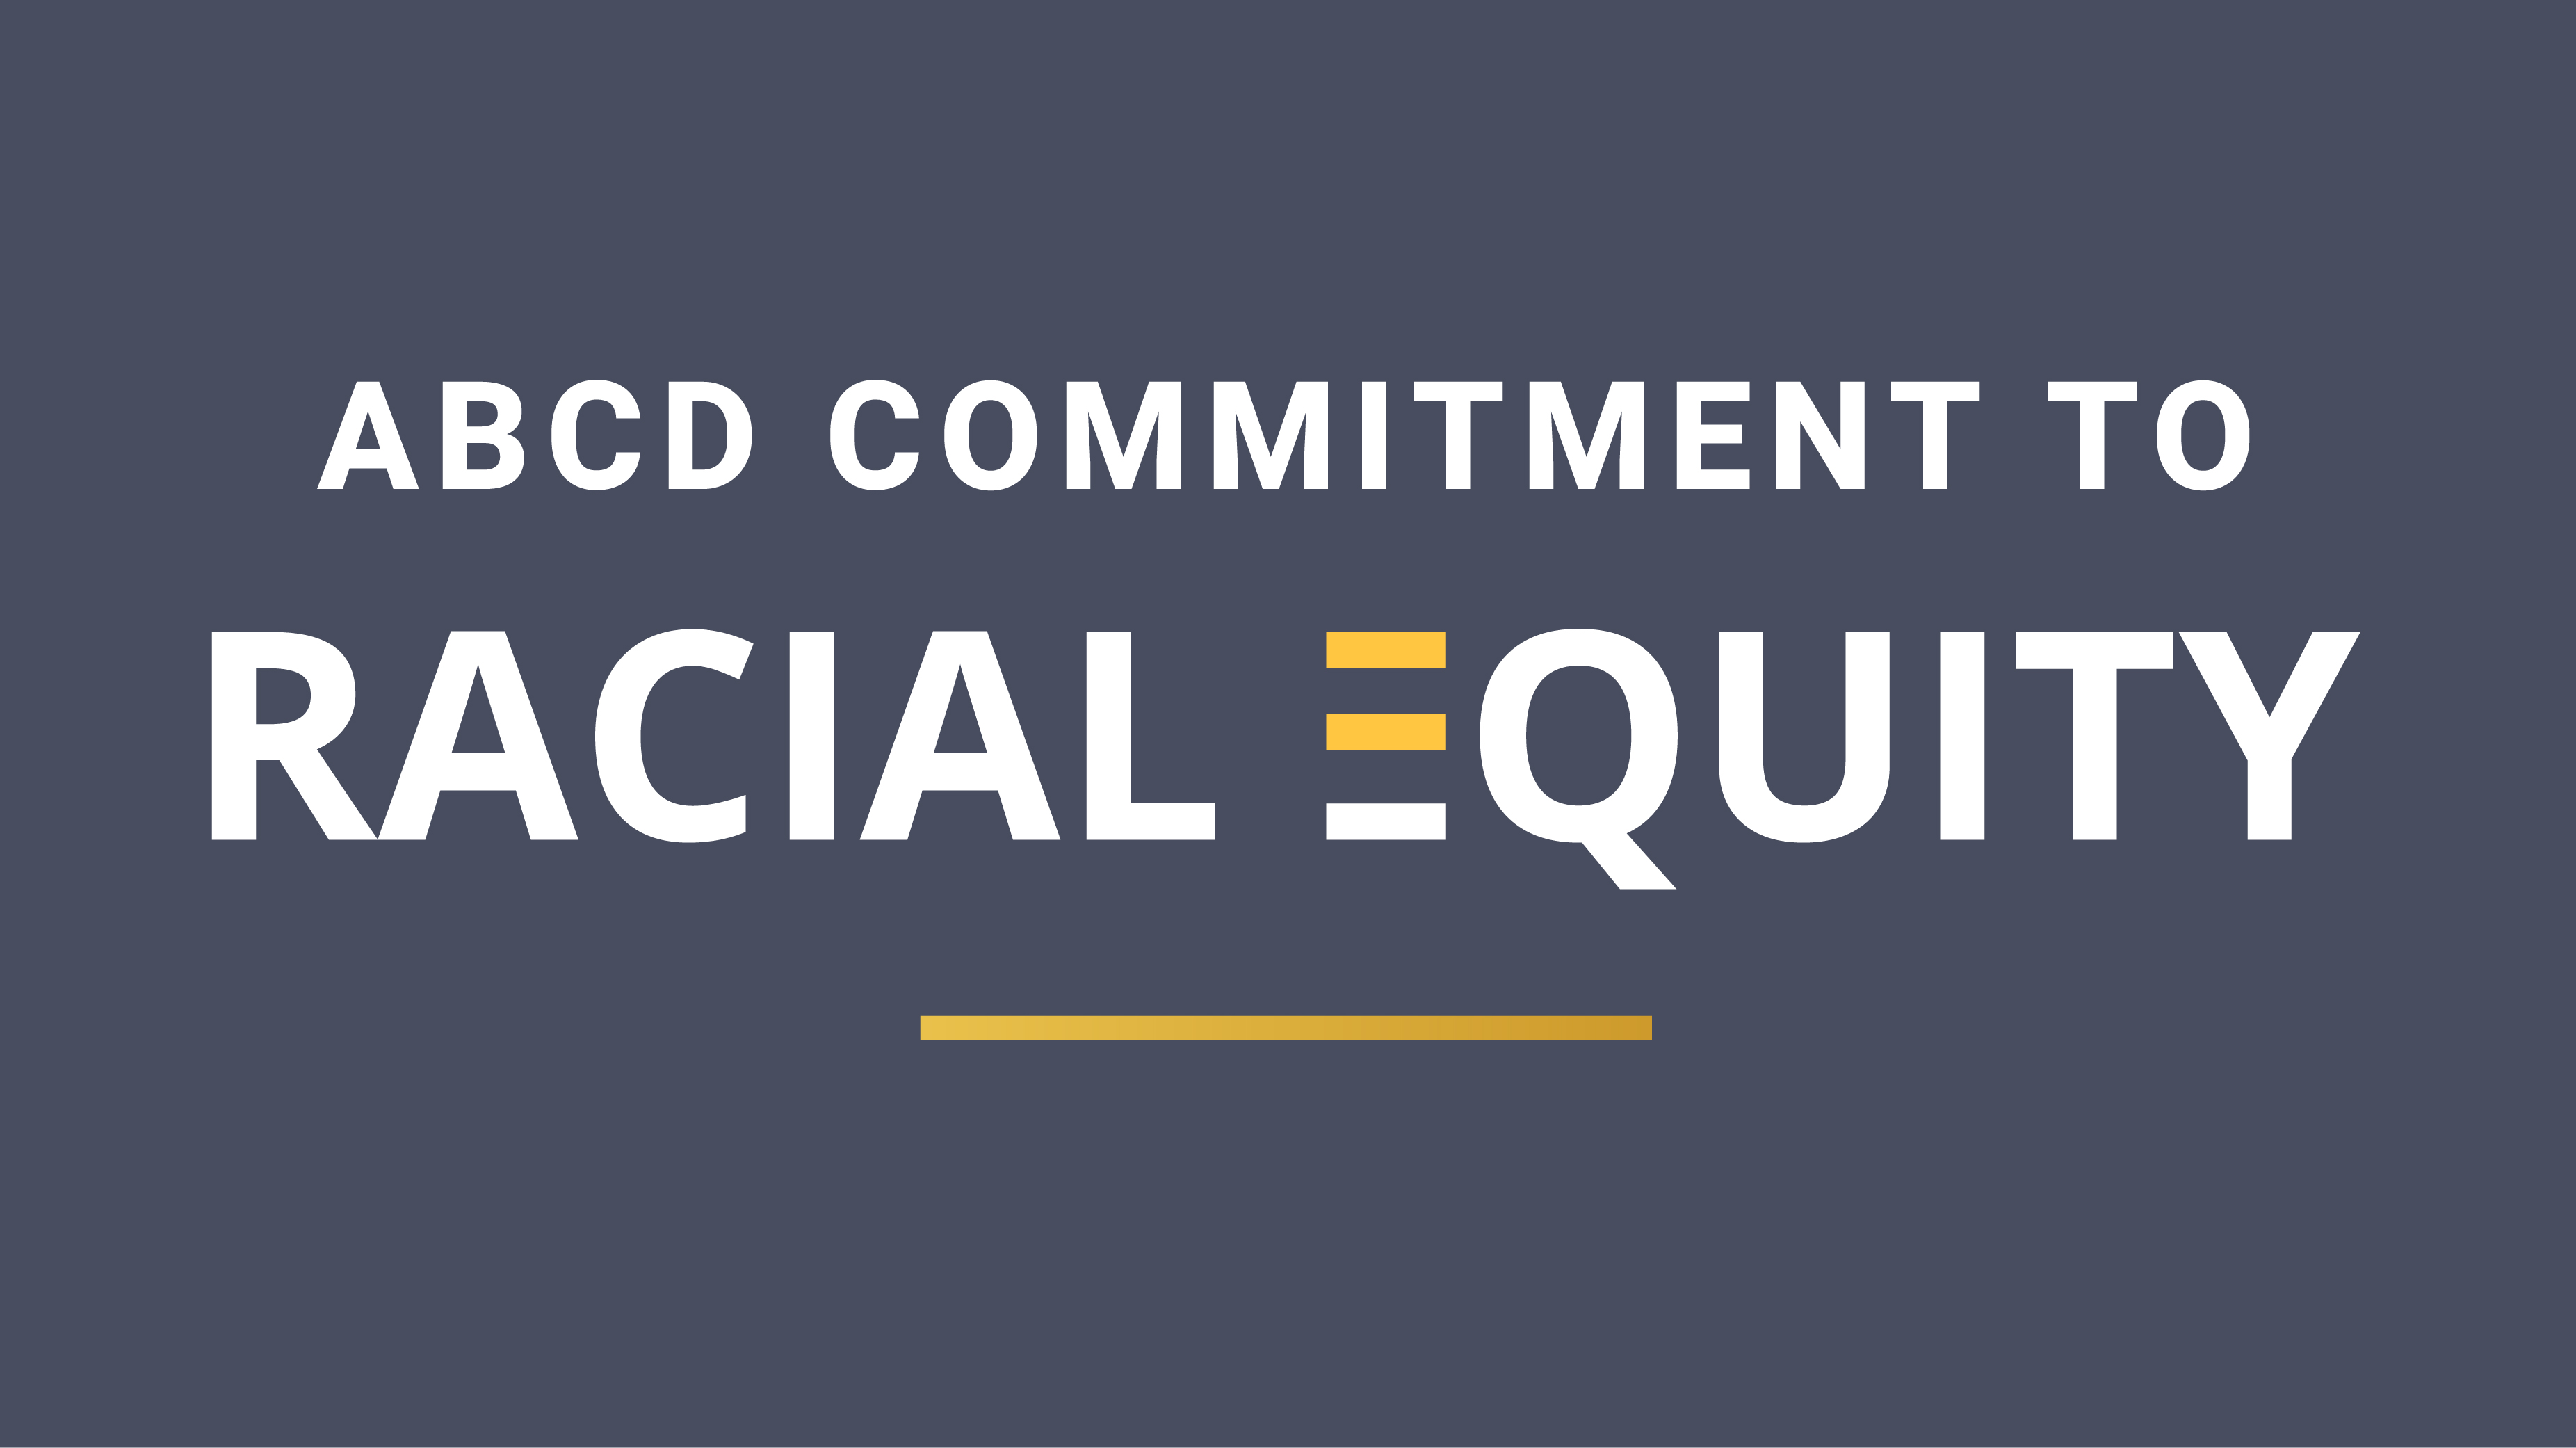 ABCD recommits to anti-racism